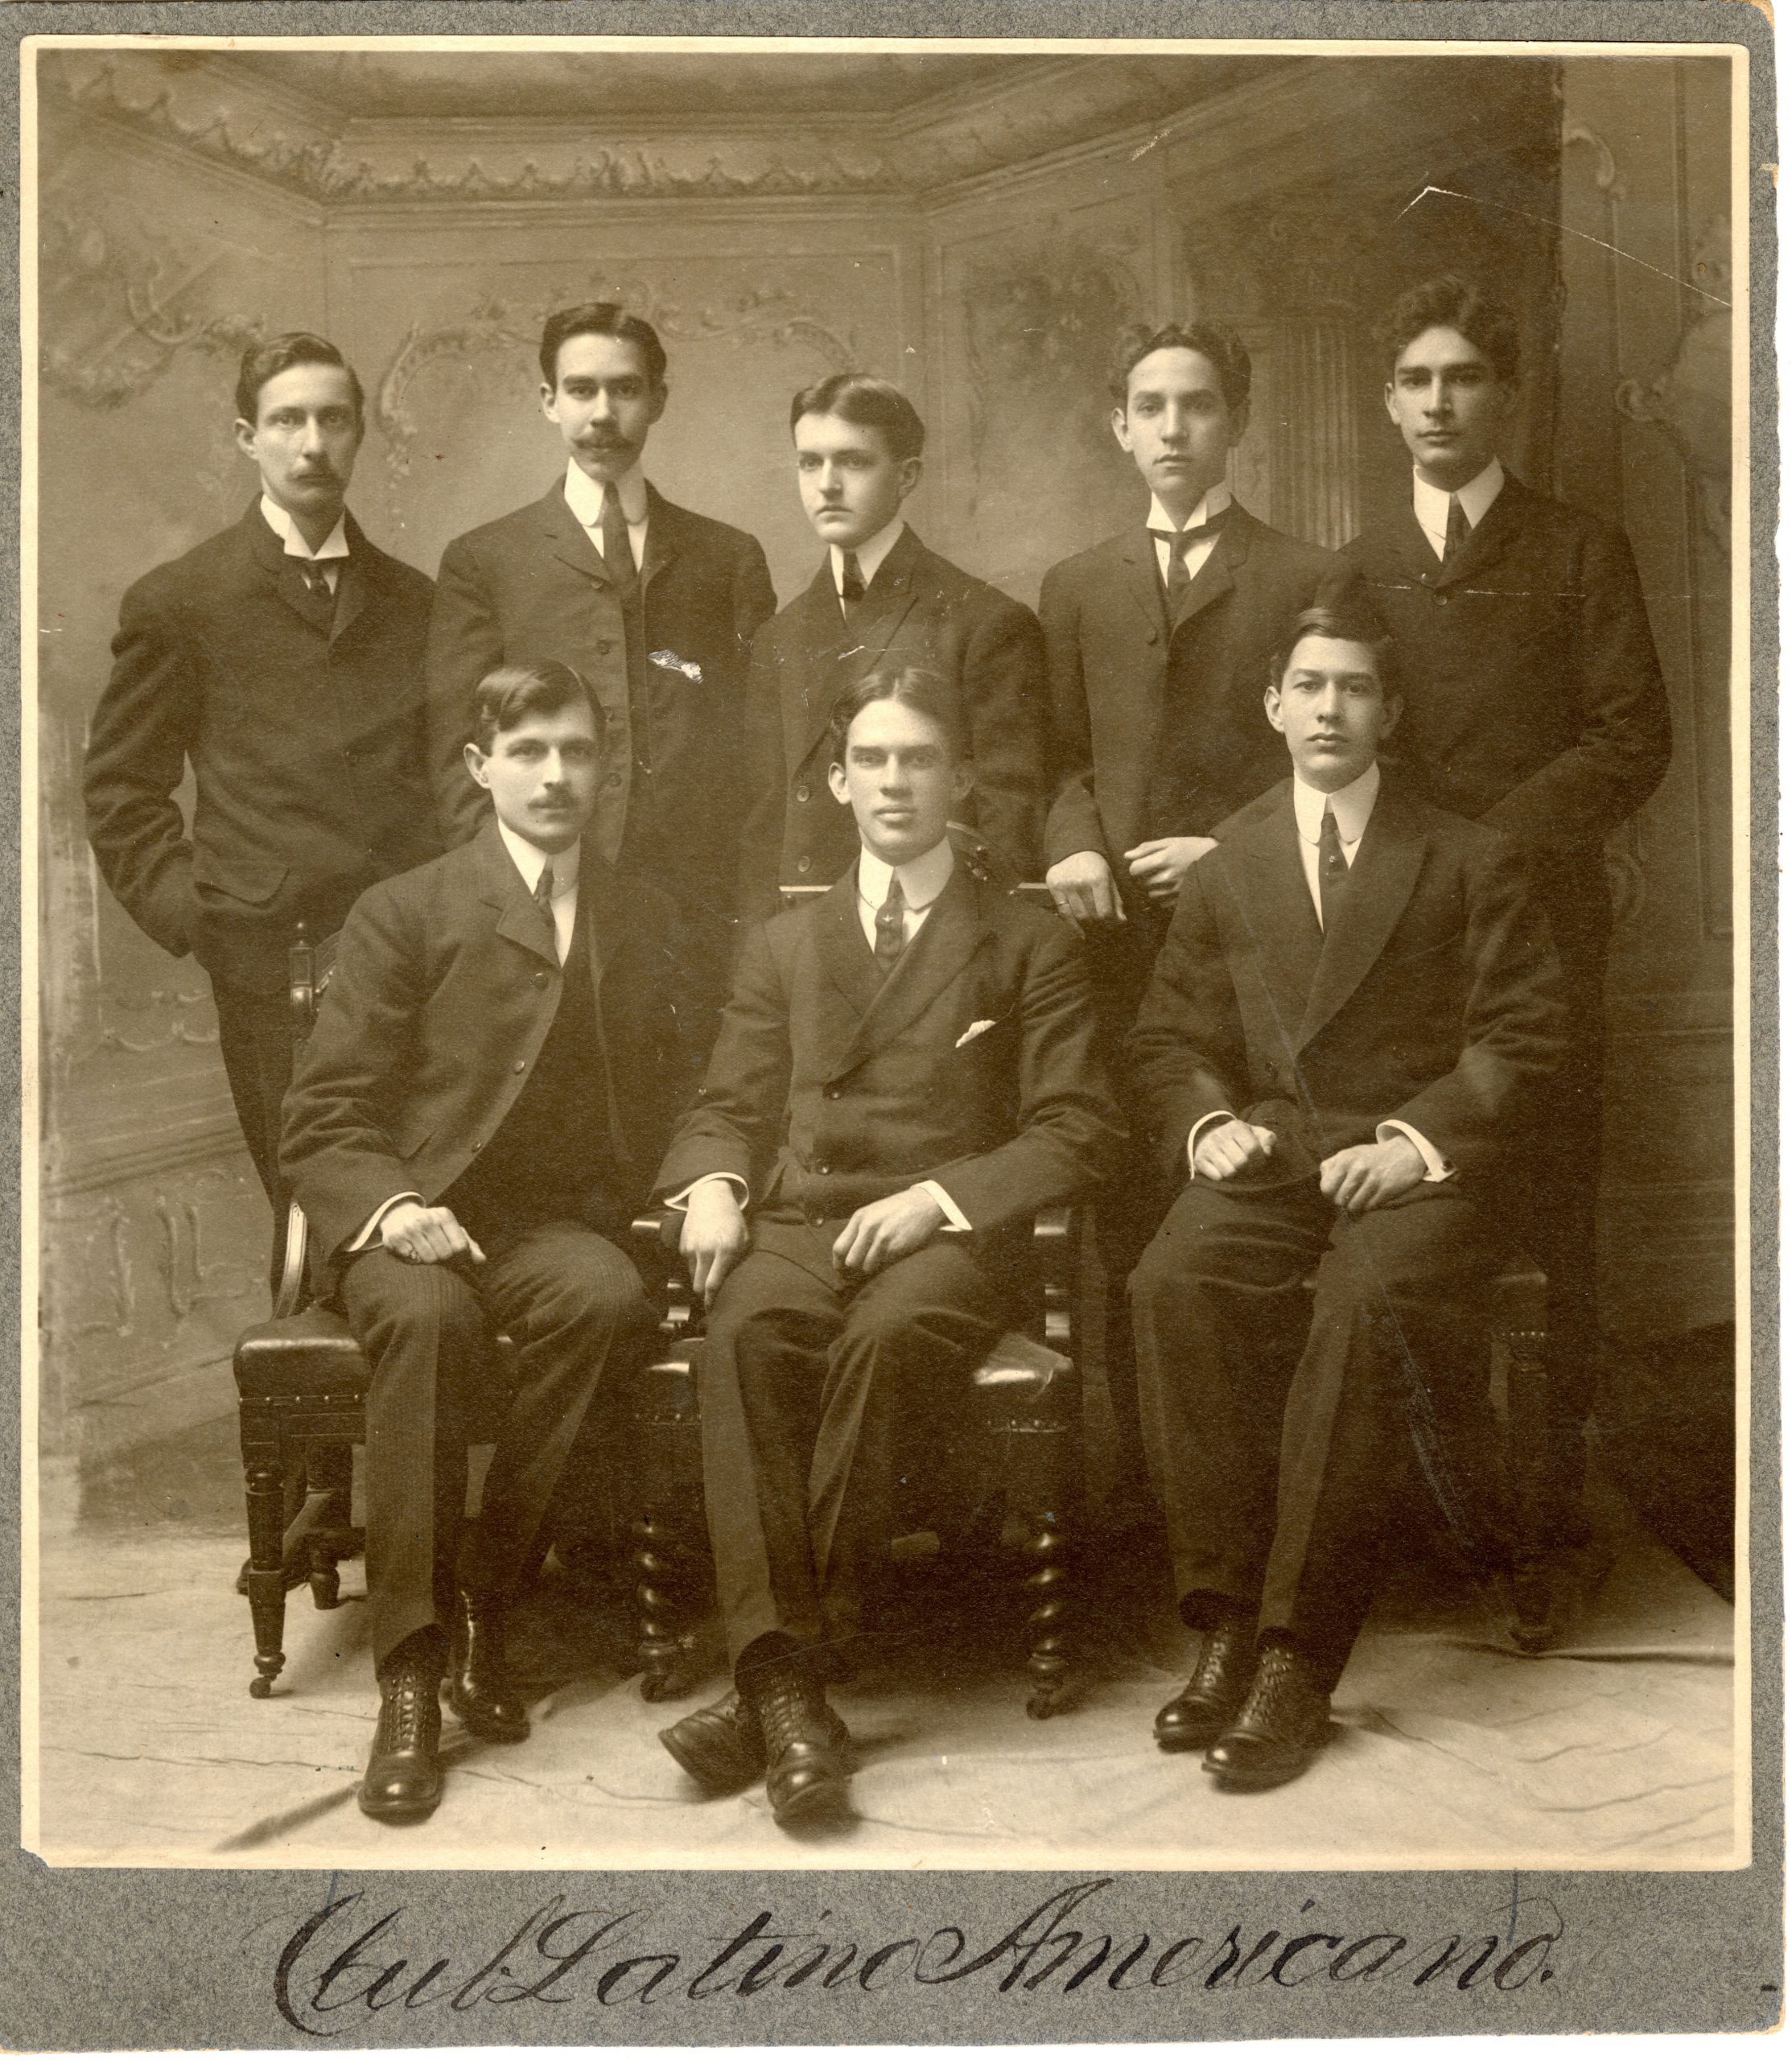 Sepia photograph of a group of 8 men, five standing behind three seated in chairs. Caption on the bottom handwritten says Club Latino Americano.